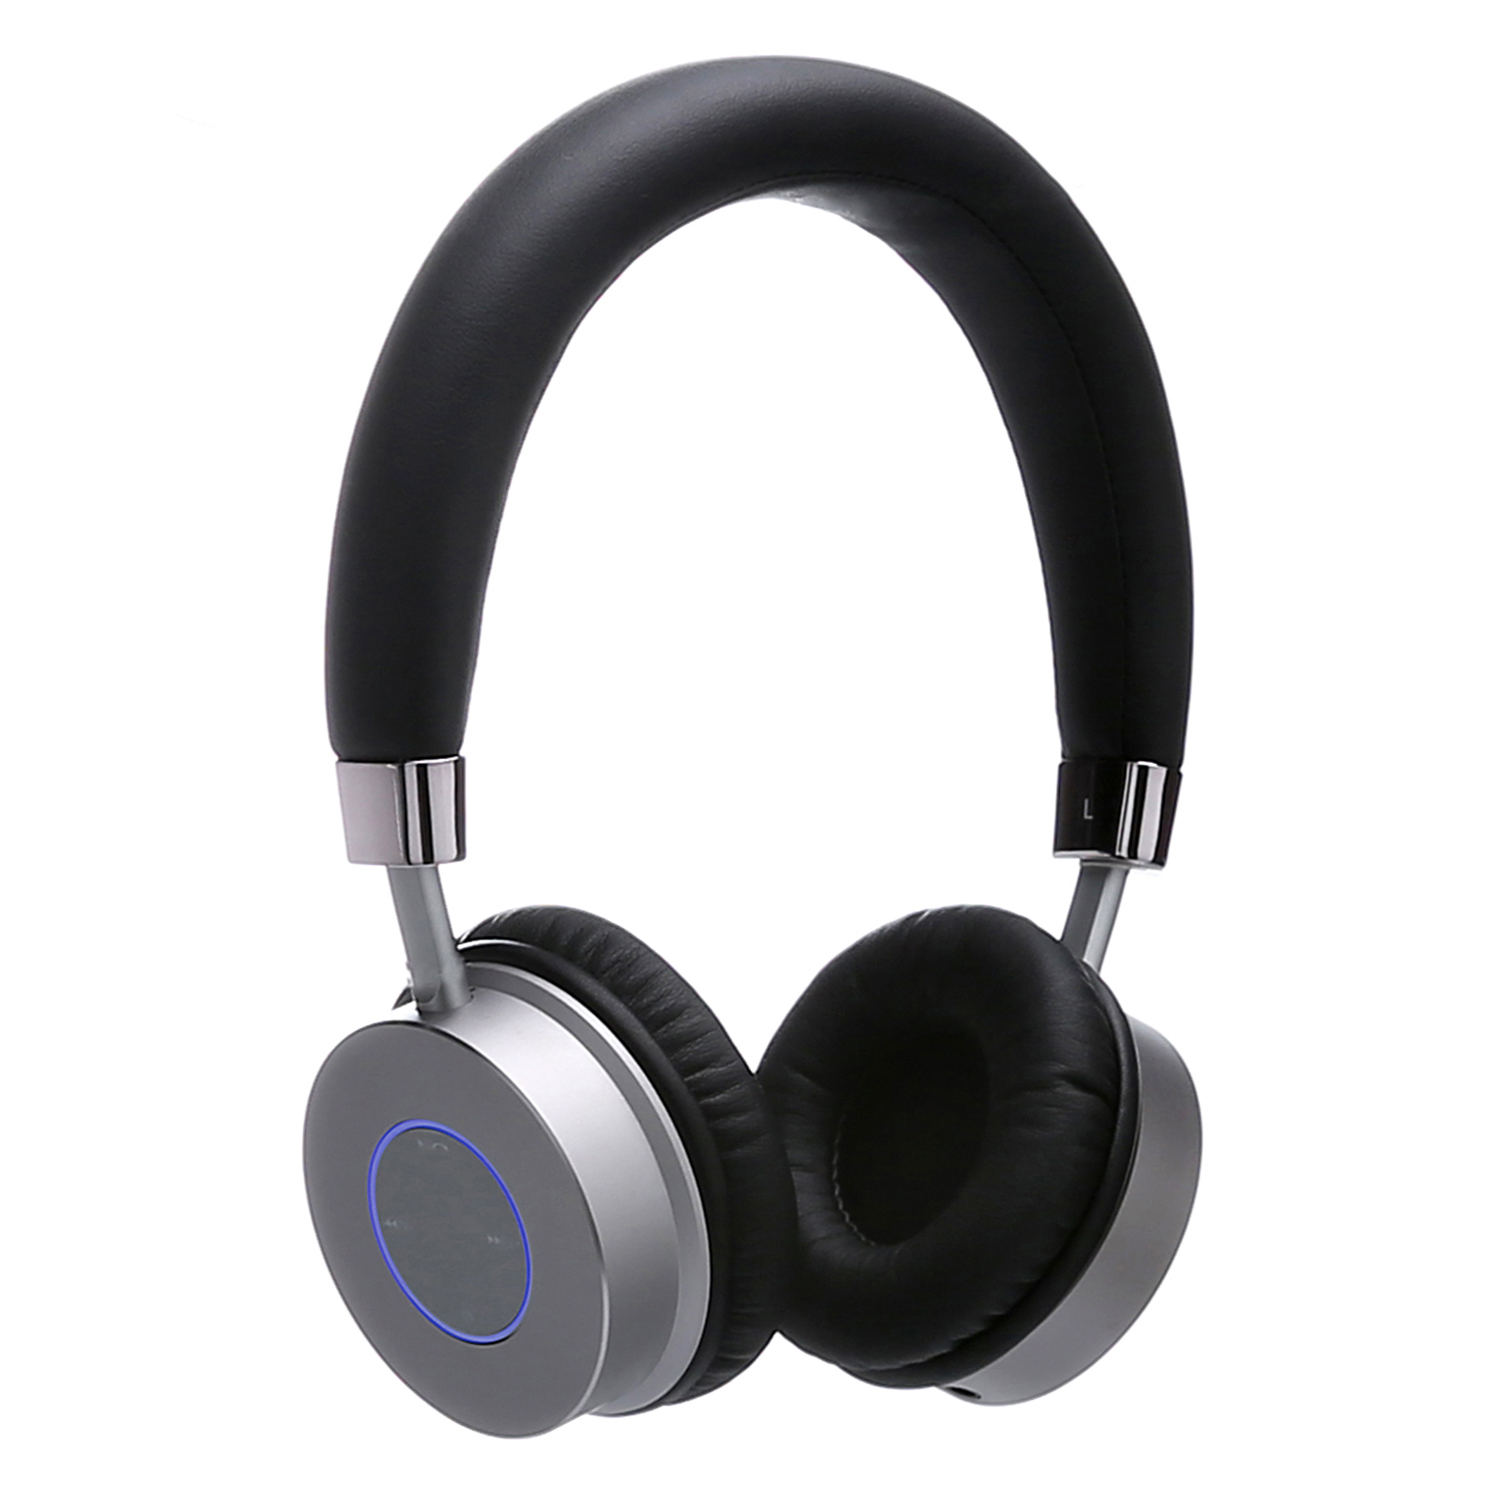 Contixo Premium Kids Headphones With Volume Limit Controls (Max 85dB), Bluetooth Wireless Headphones Over-The-Ear With Comfortable Cushioning (Black)